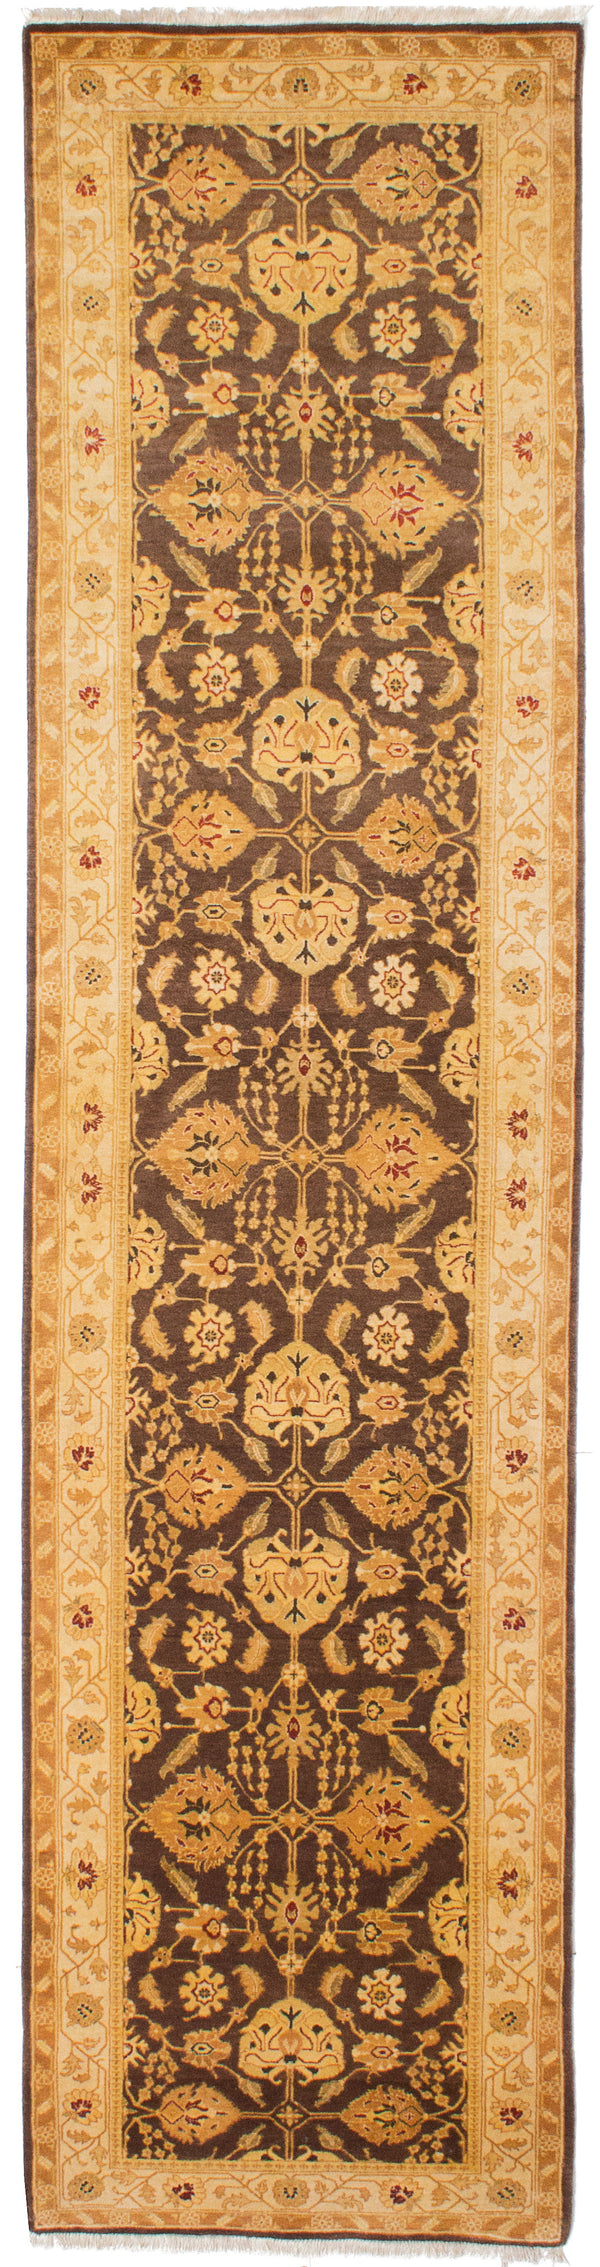 "Hand-knotted Pakistani Traditional Pako-Persian-18/20 Runner rug  Dark Brown 3'2 x 12'5"" """